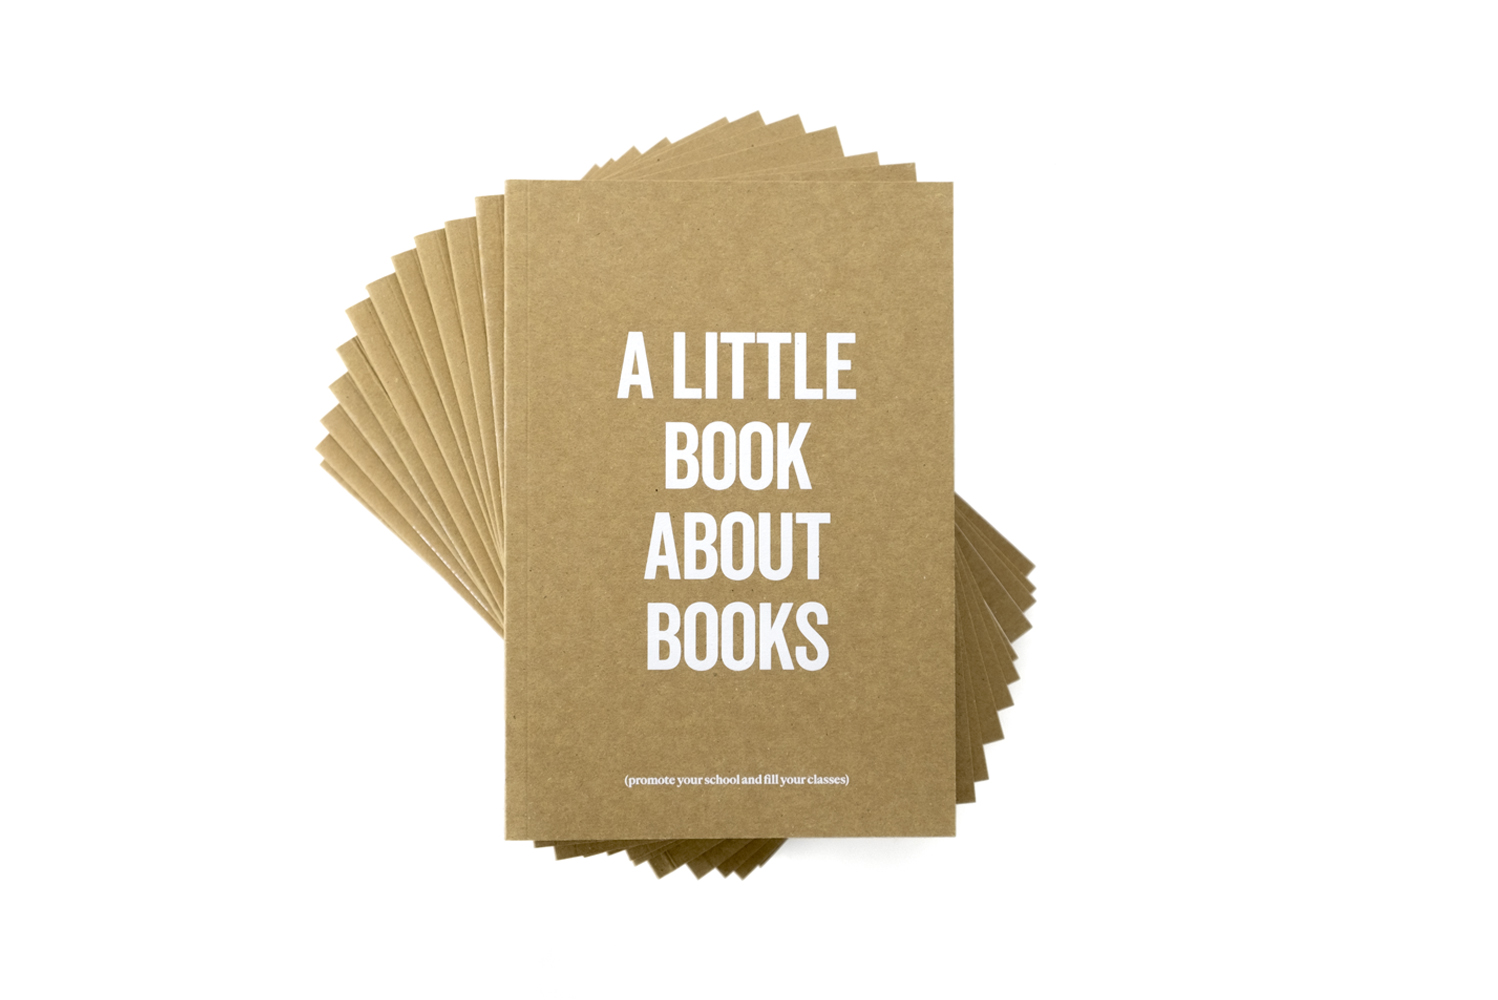 a_little_book_about_books_001.jpg